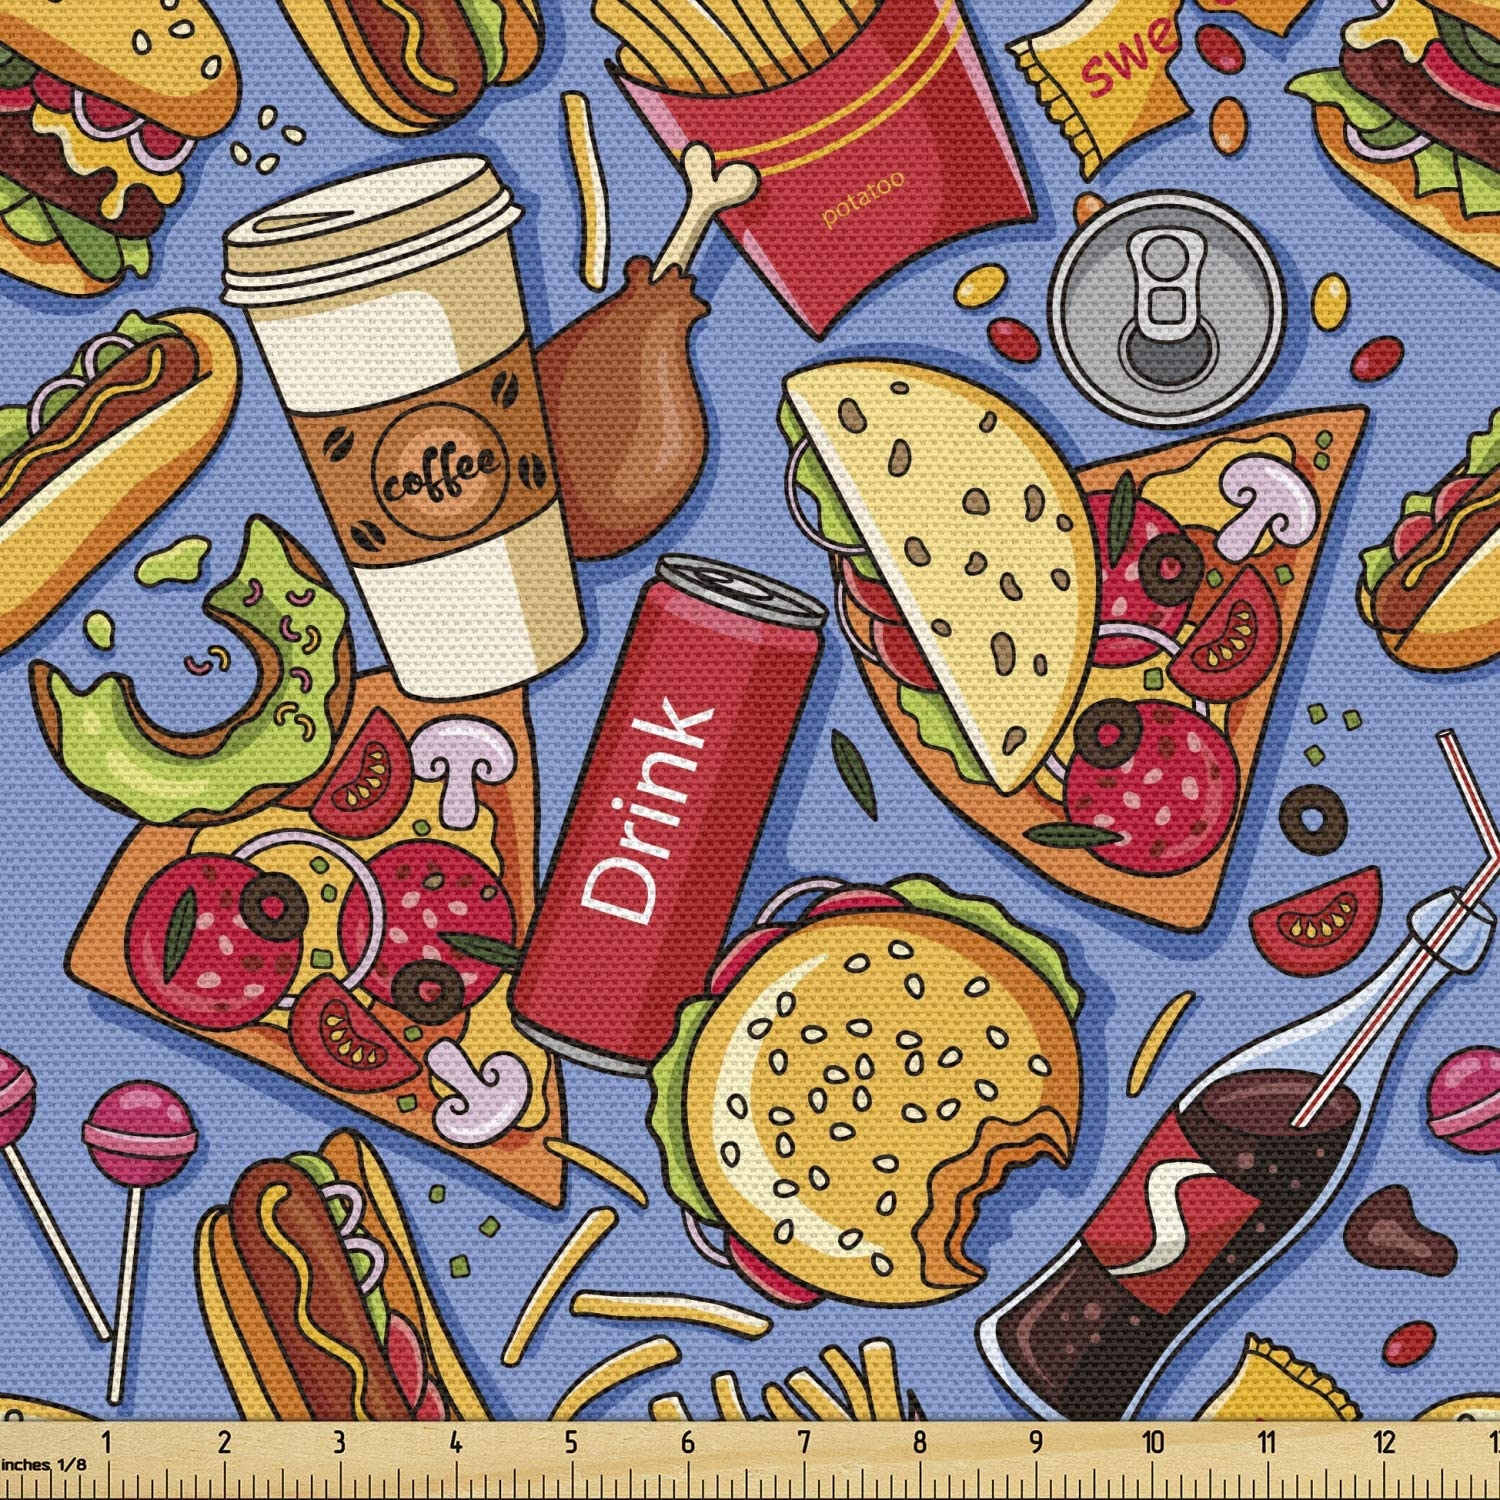 Lunarable Fast Food Fabric by The Yard, Cartoon Style Junk Food Hamburger Pizza Tacos Fizzy Drinks Fries, Decorative Fabric for Upholstery and Home Accents, 1 Yard, Ceil Blue